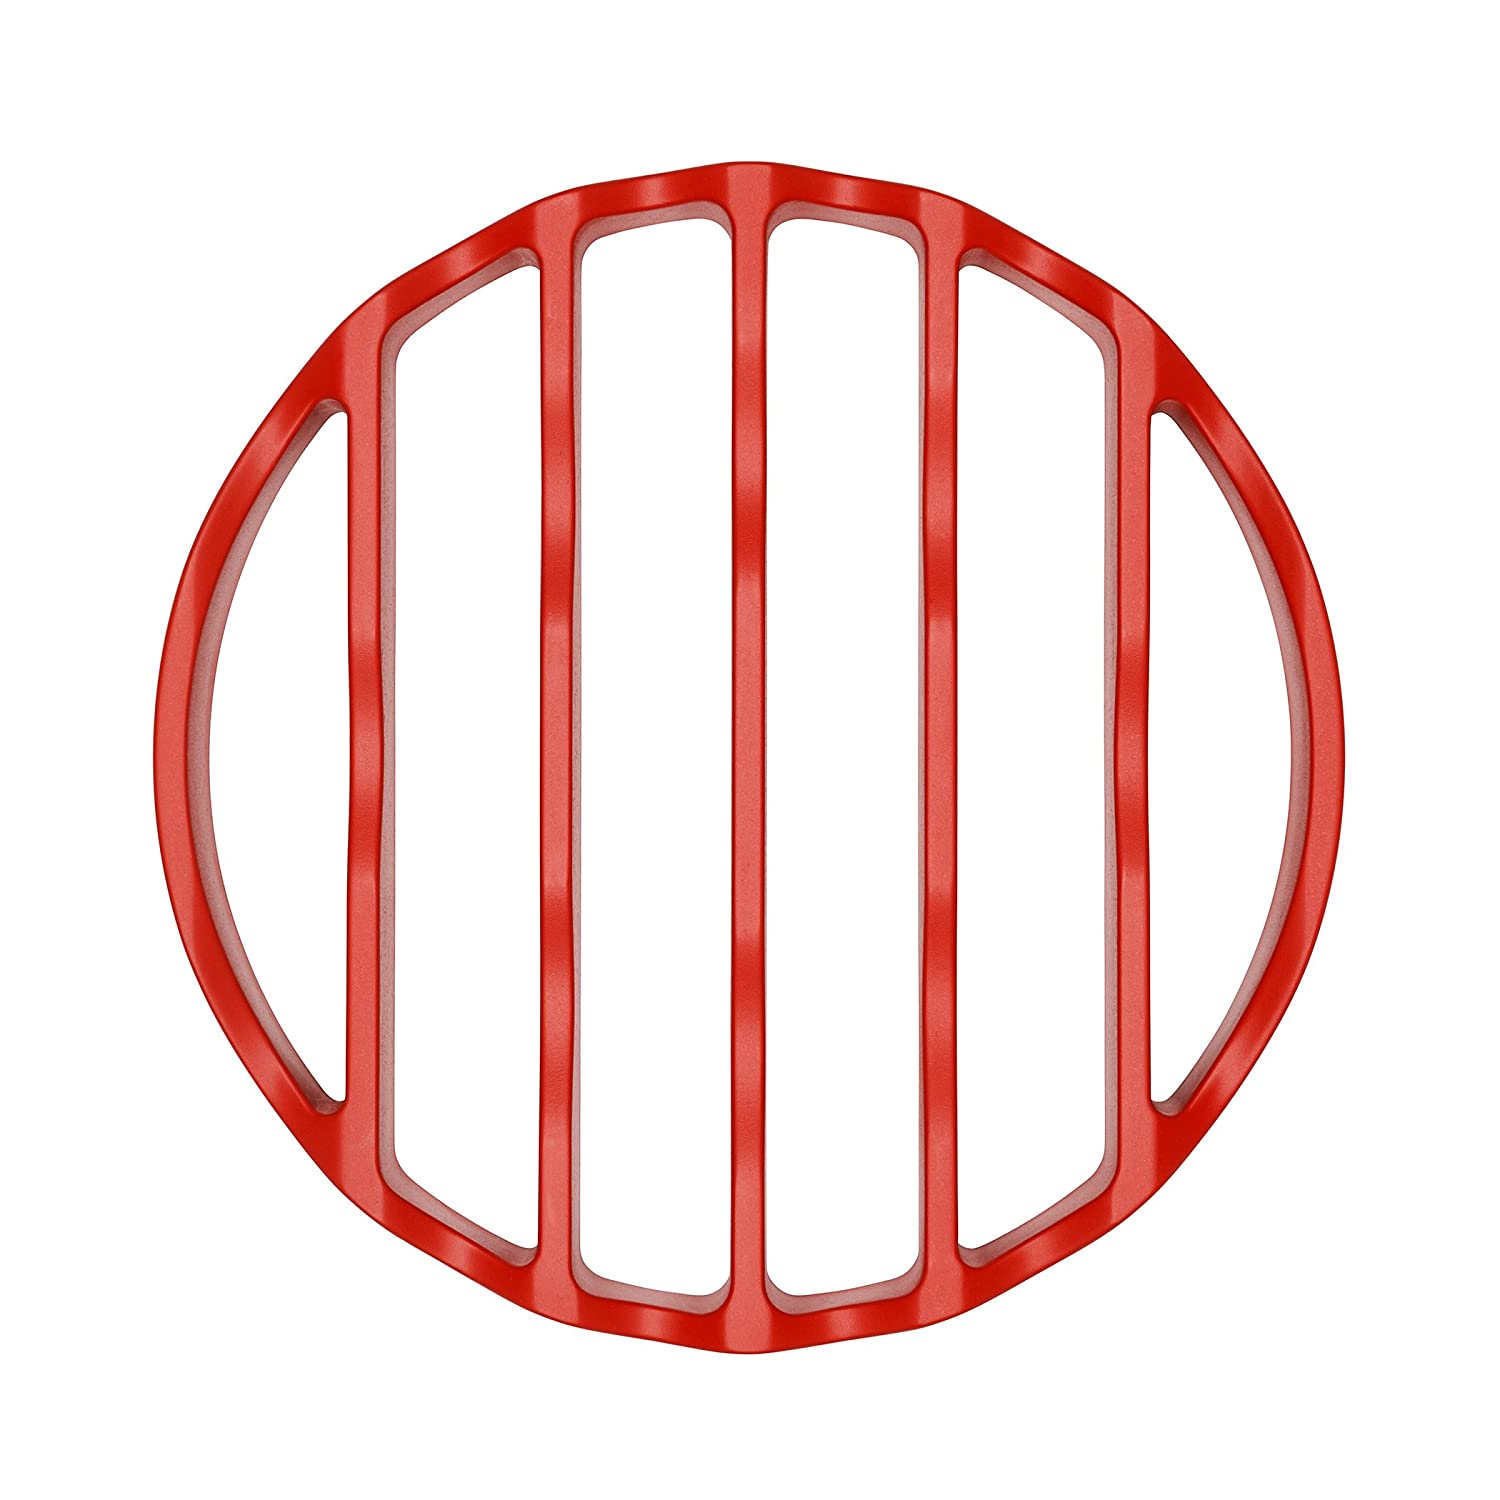 OXO Good Grips Silicone Pressure Cooker Rack Red